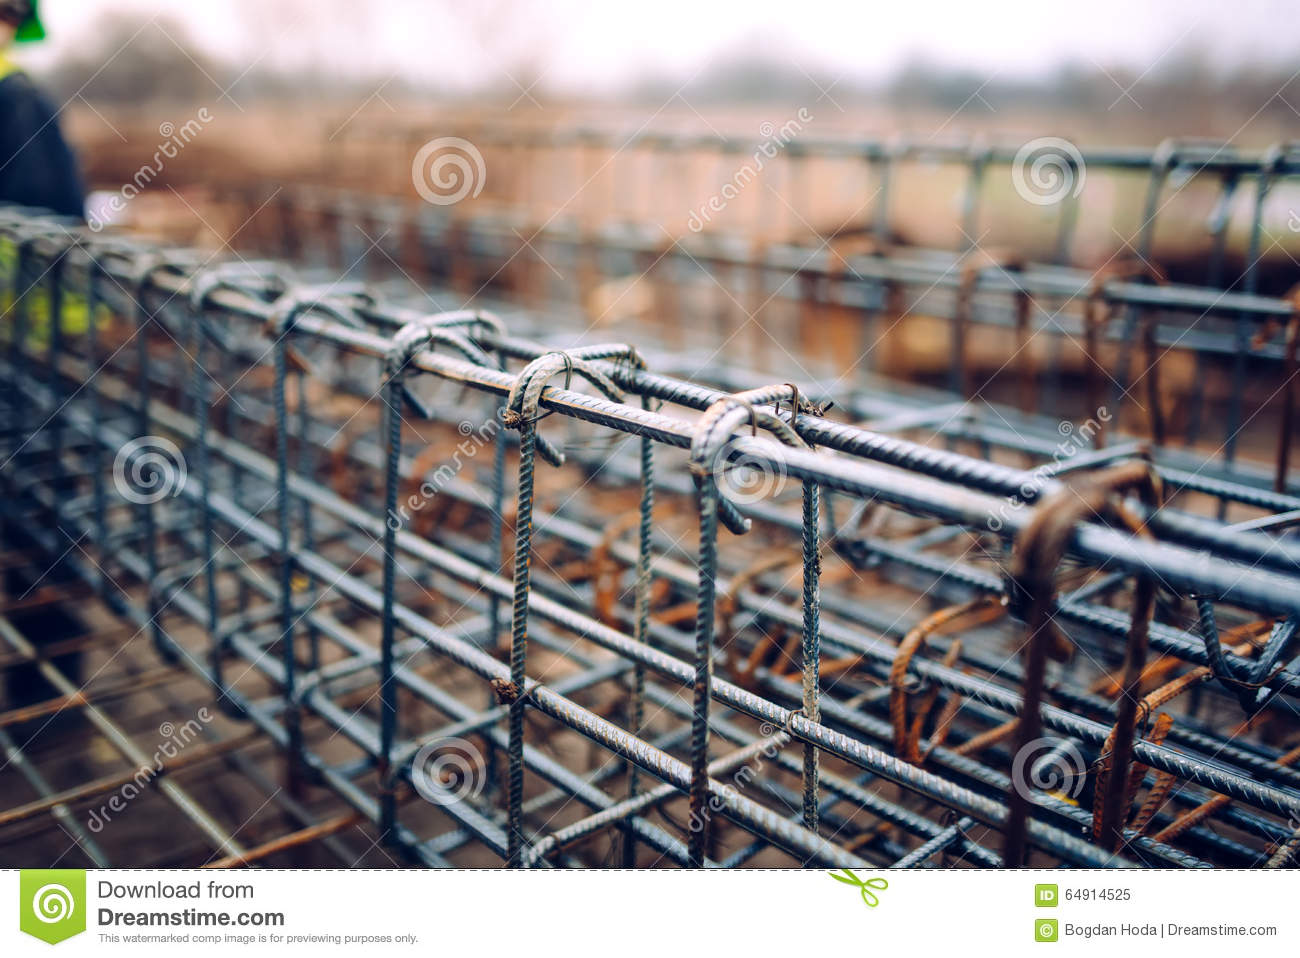 Rebar Steel Bars, Reinforcement Concrete Bars With Wire Rod Used In ...